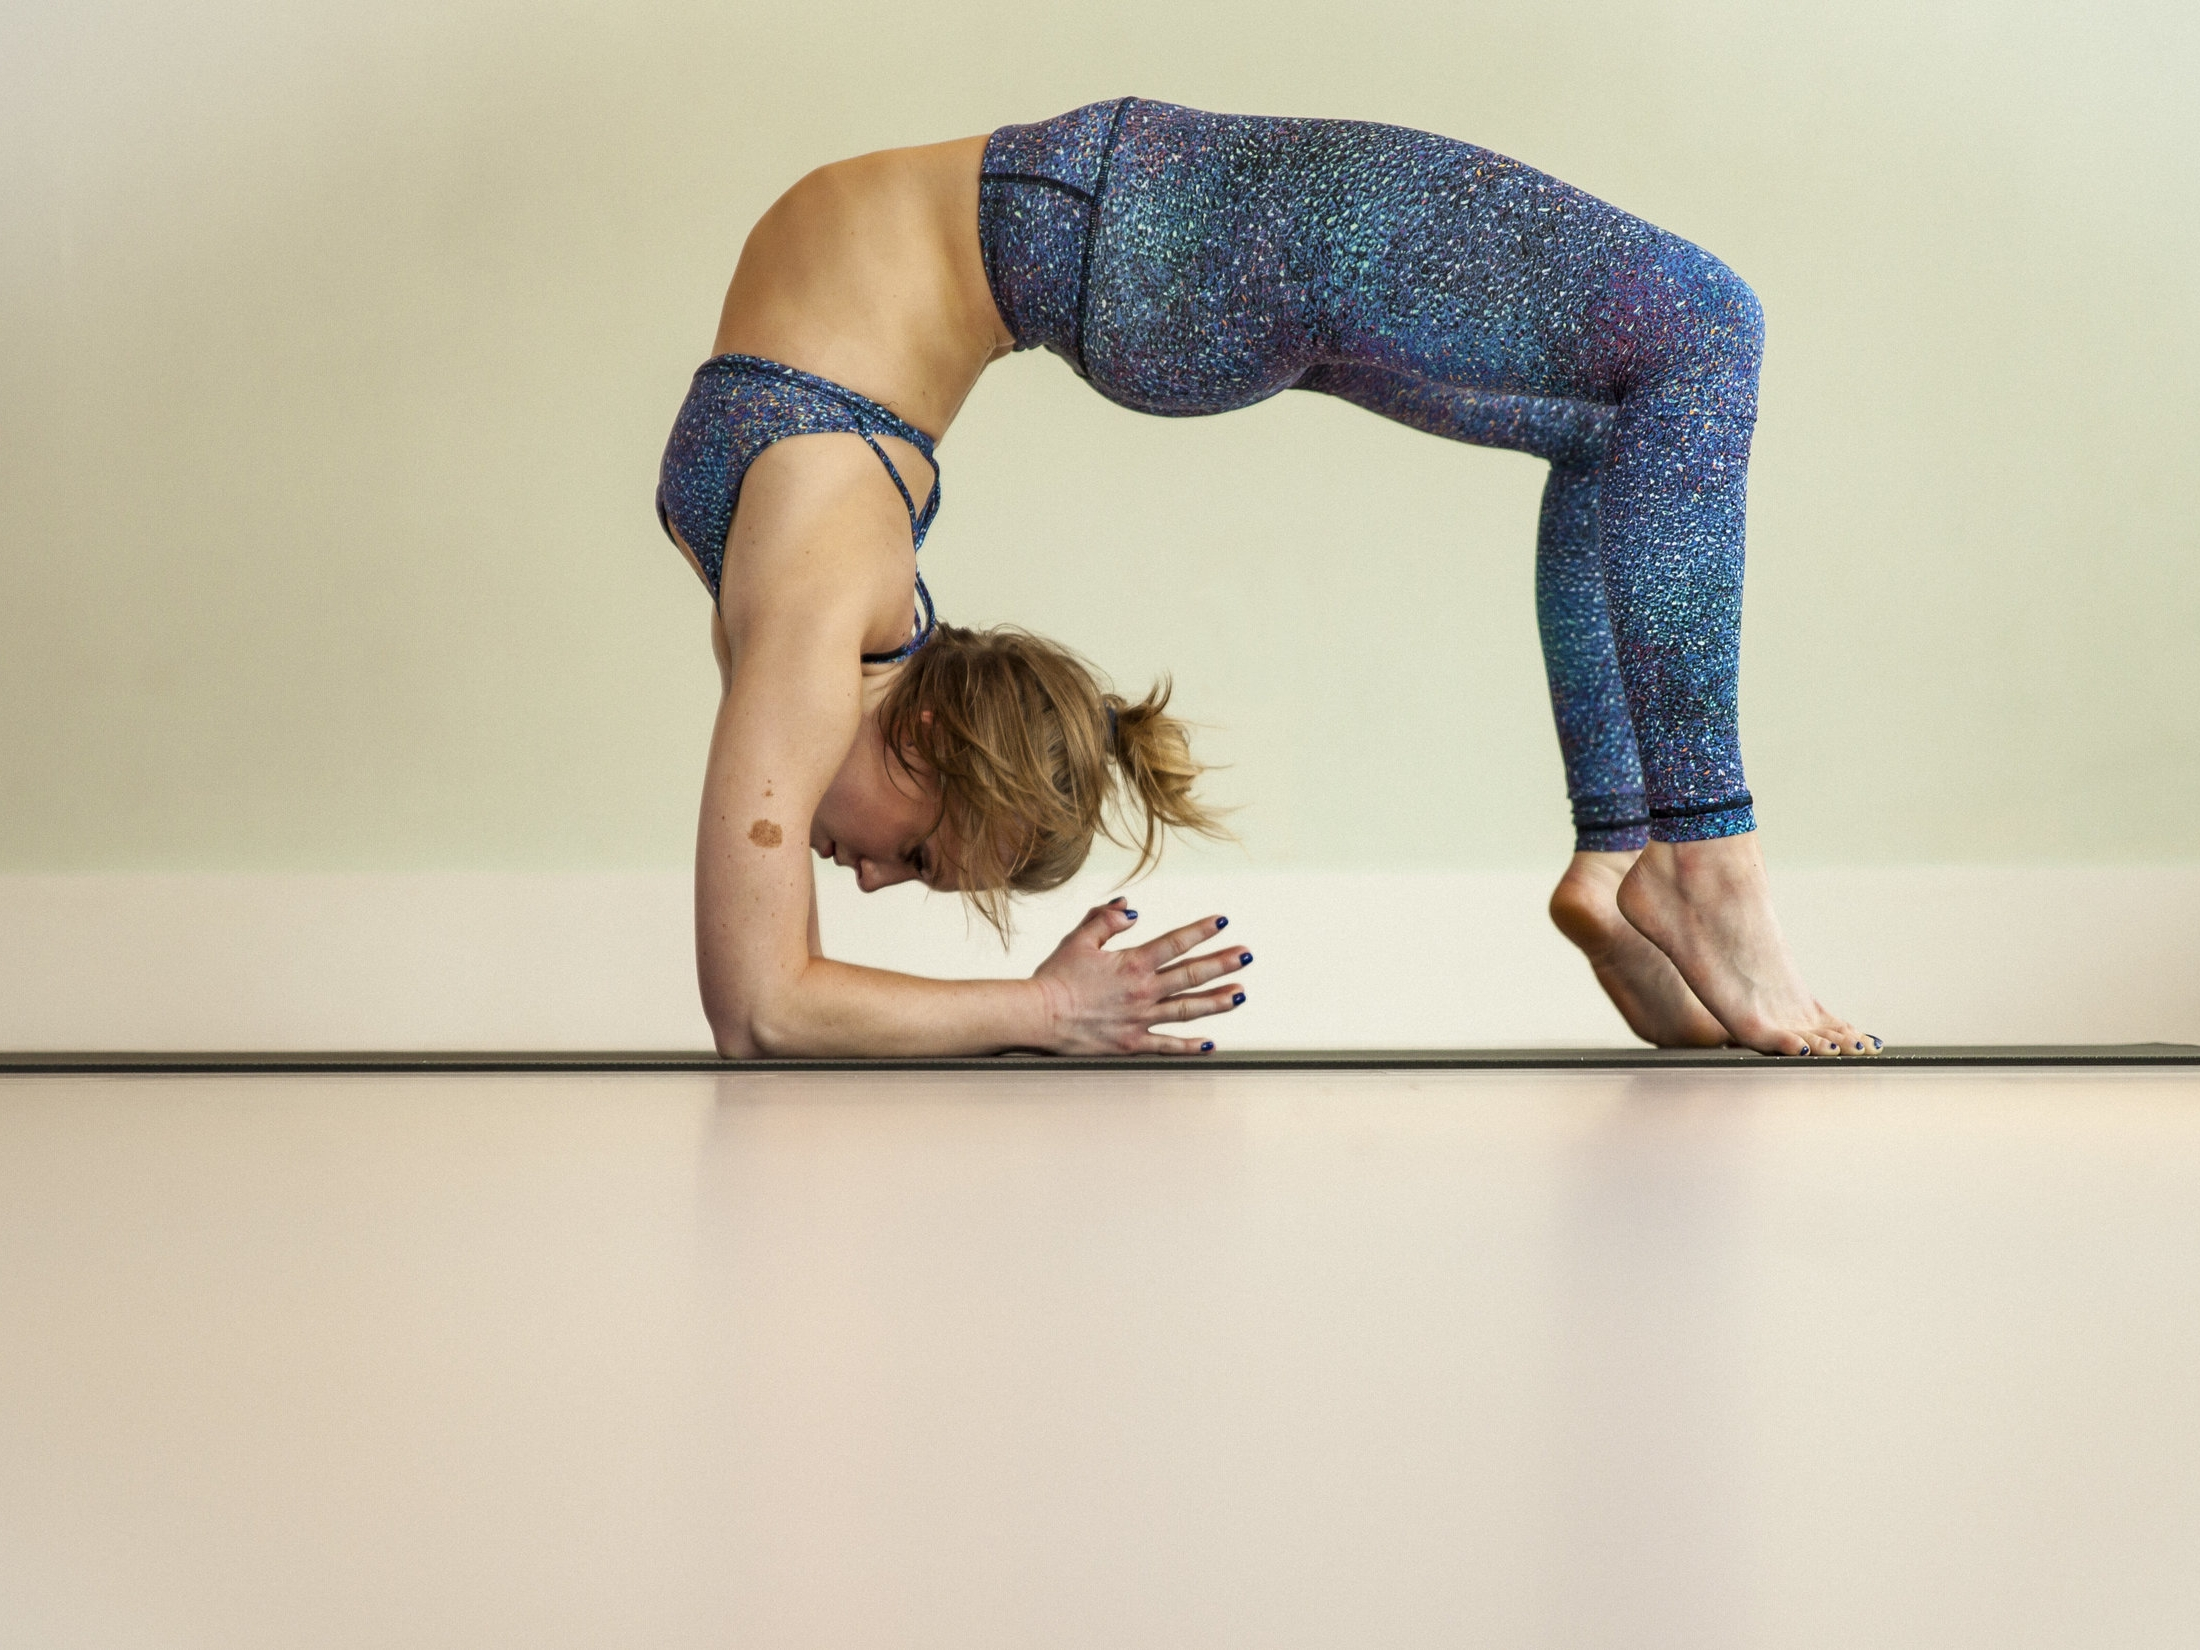 Really to Flow withDesirae Pierce - This 60 minute Power Vinyasa class flows through sun salutations, warriors, standing balancing poses, backbends and hips.Length: 60 minutesCost: $7.99